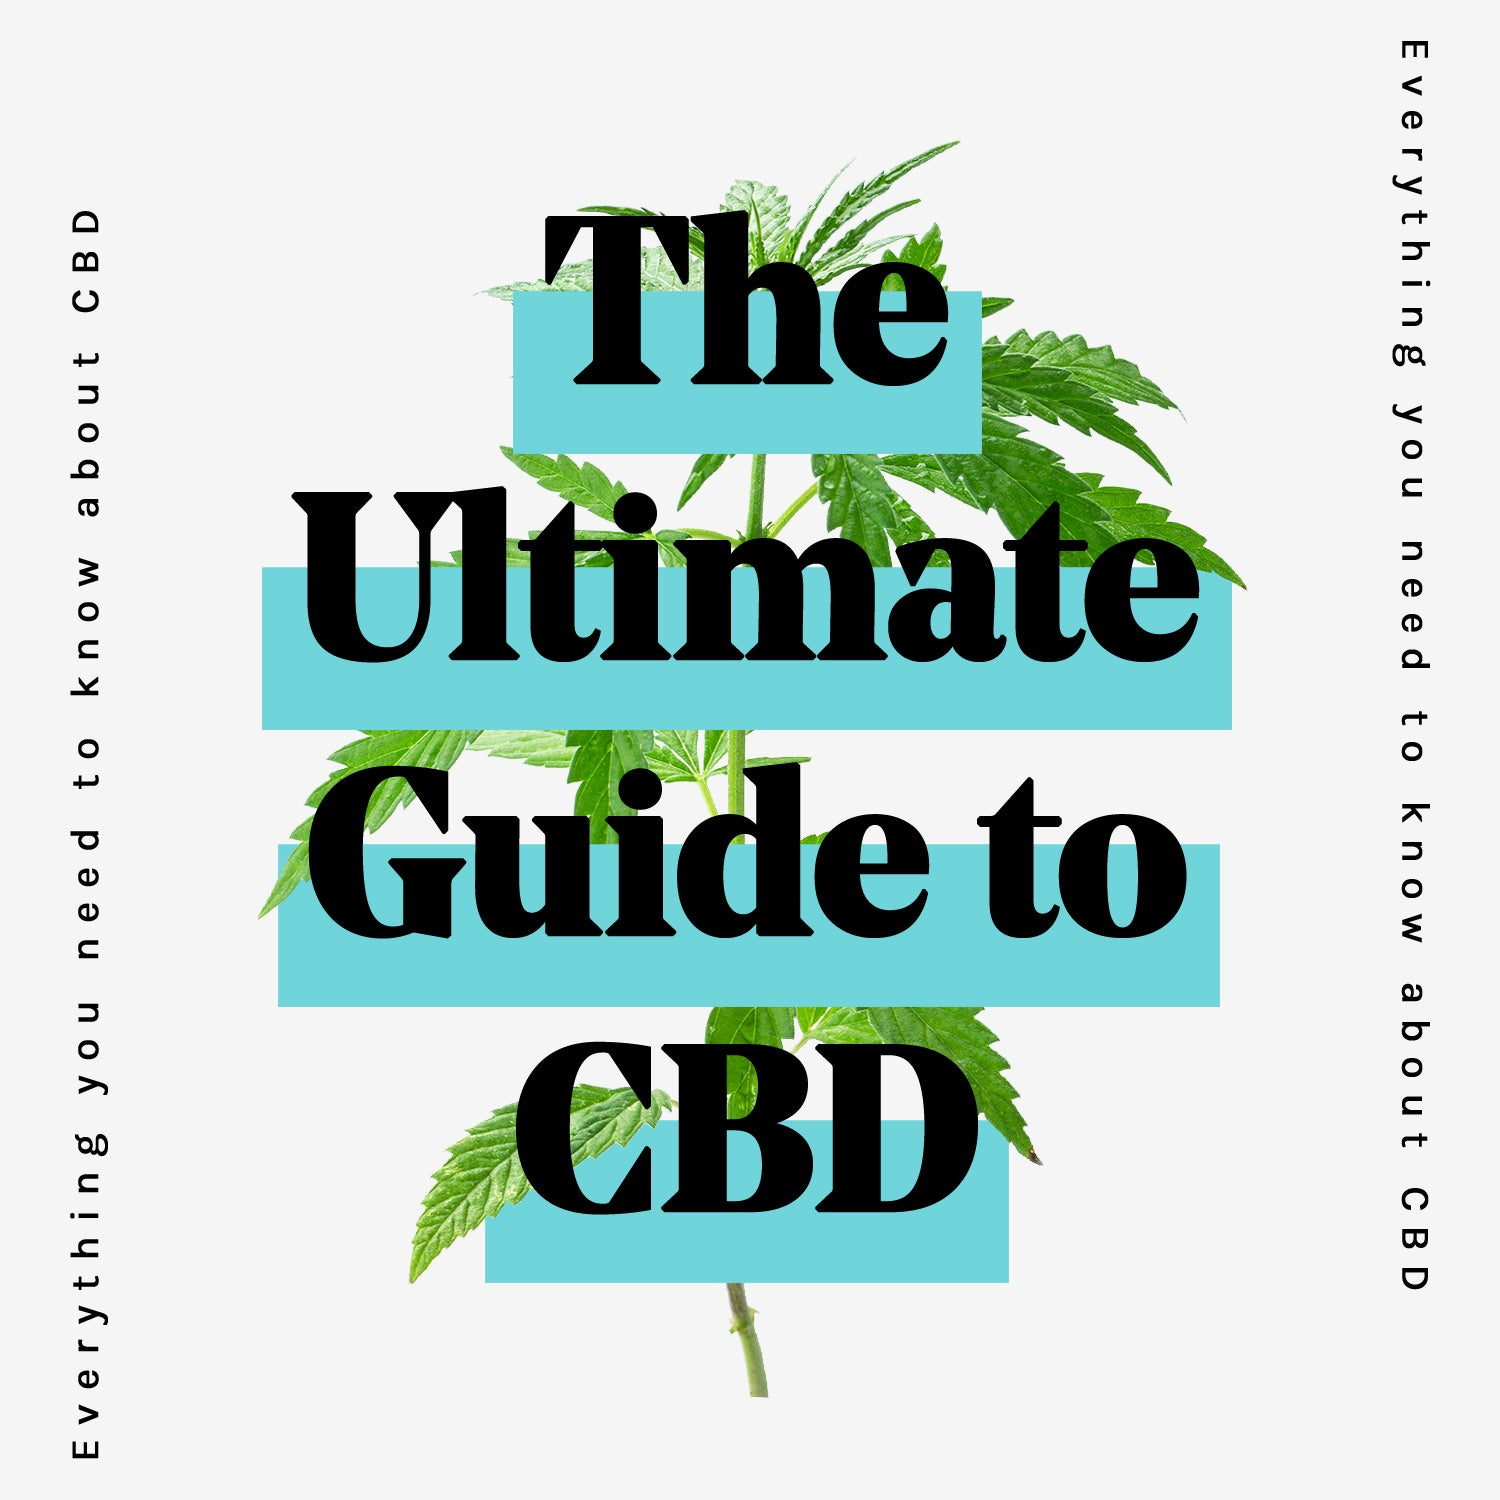 The beginner's guide to CBD - Good Soul CBD presents the ultimate cbd guide